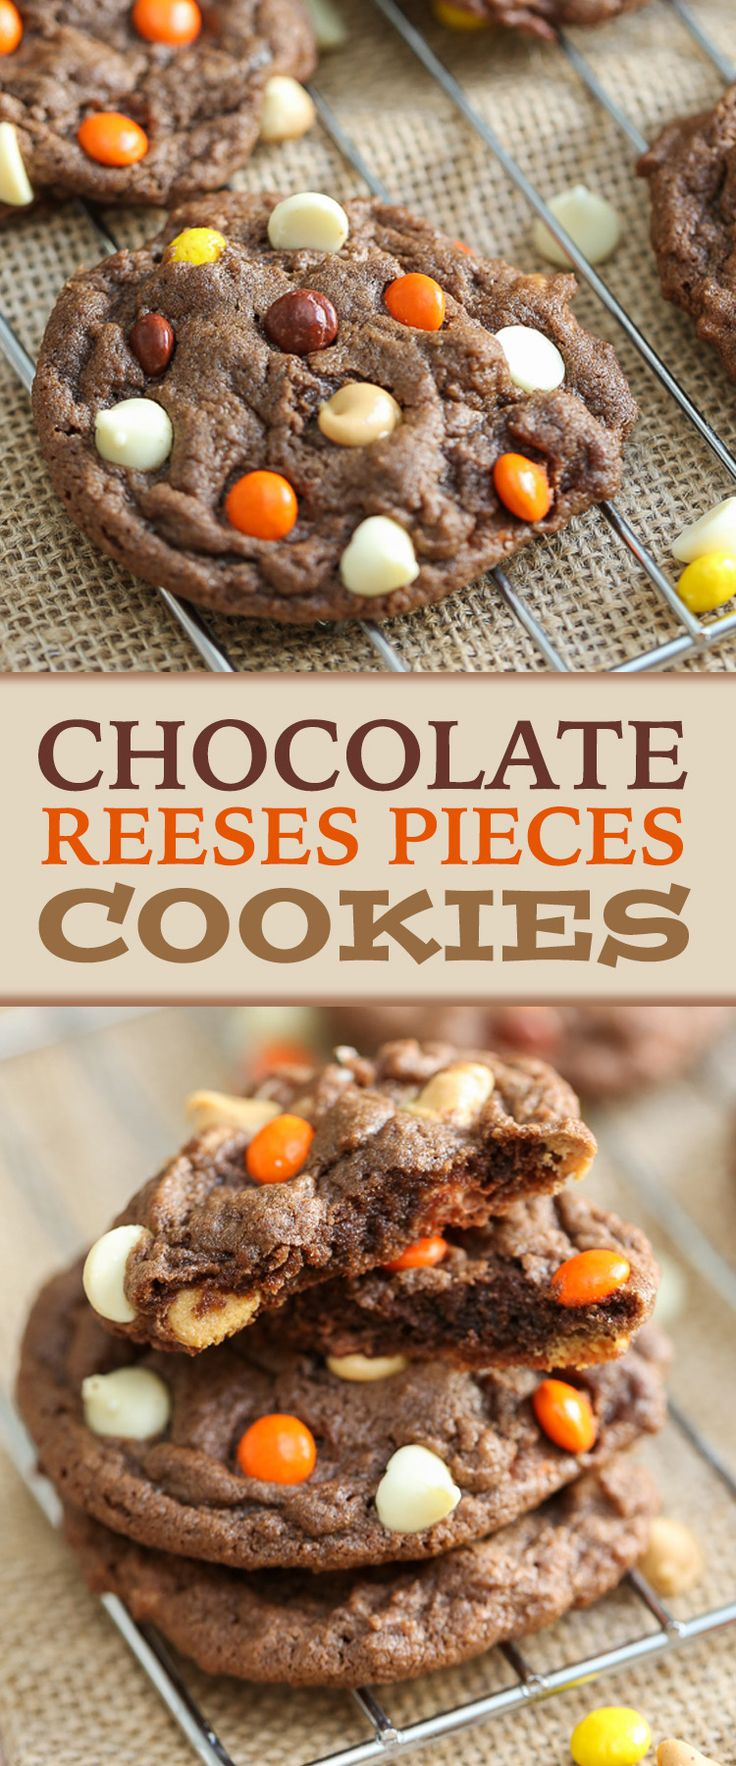 Chocolate Reese's Pieces Cookies are moist, fluffy - with milk chocolate, white chocolate and Reese's Pieces - it's the perfect cookie dessert.